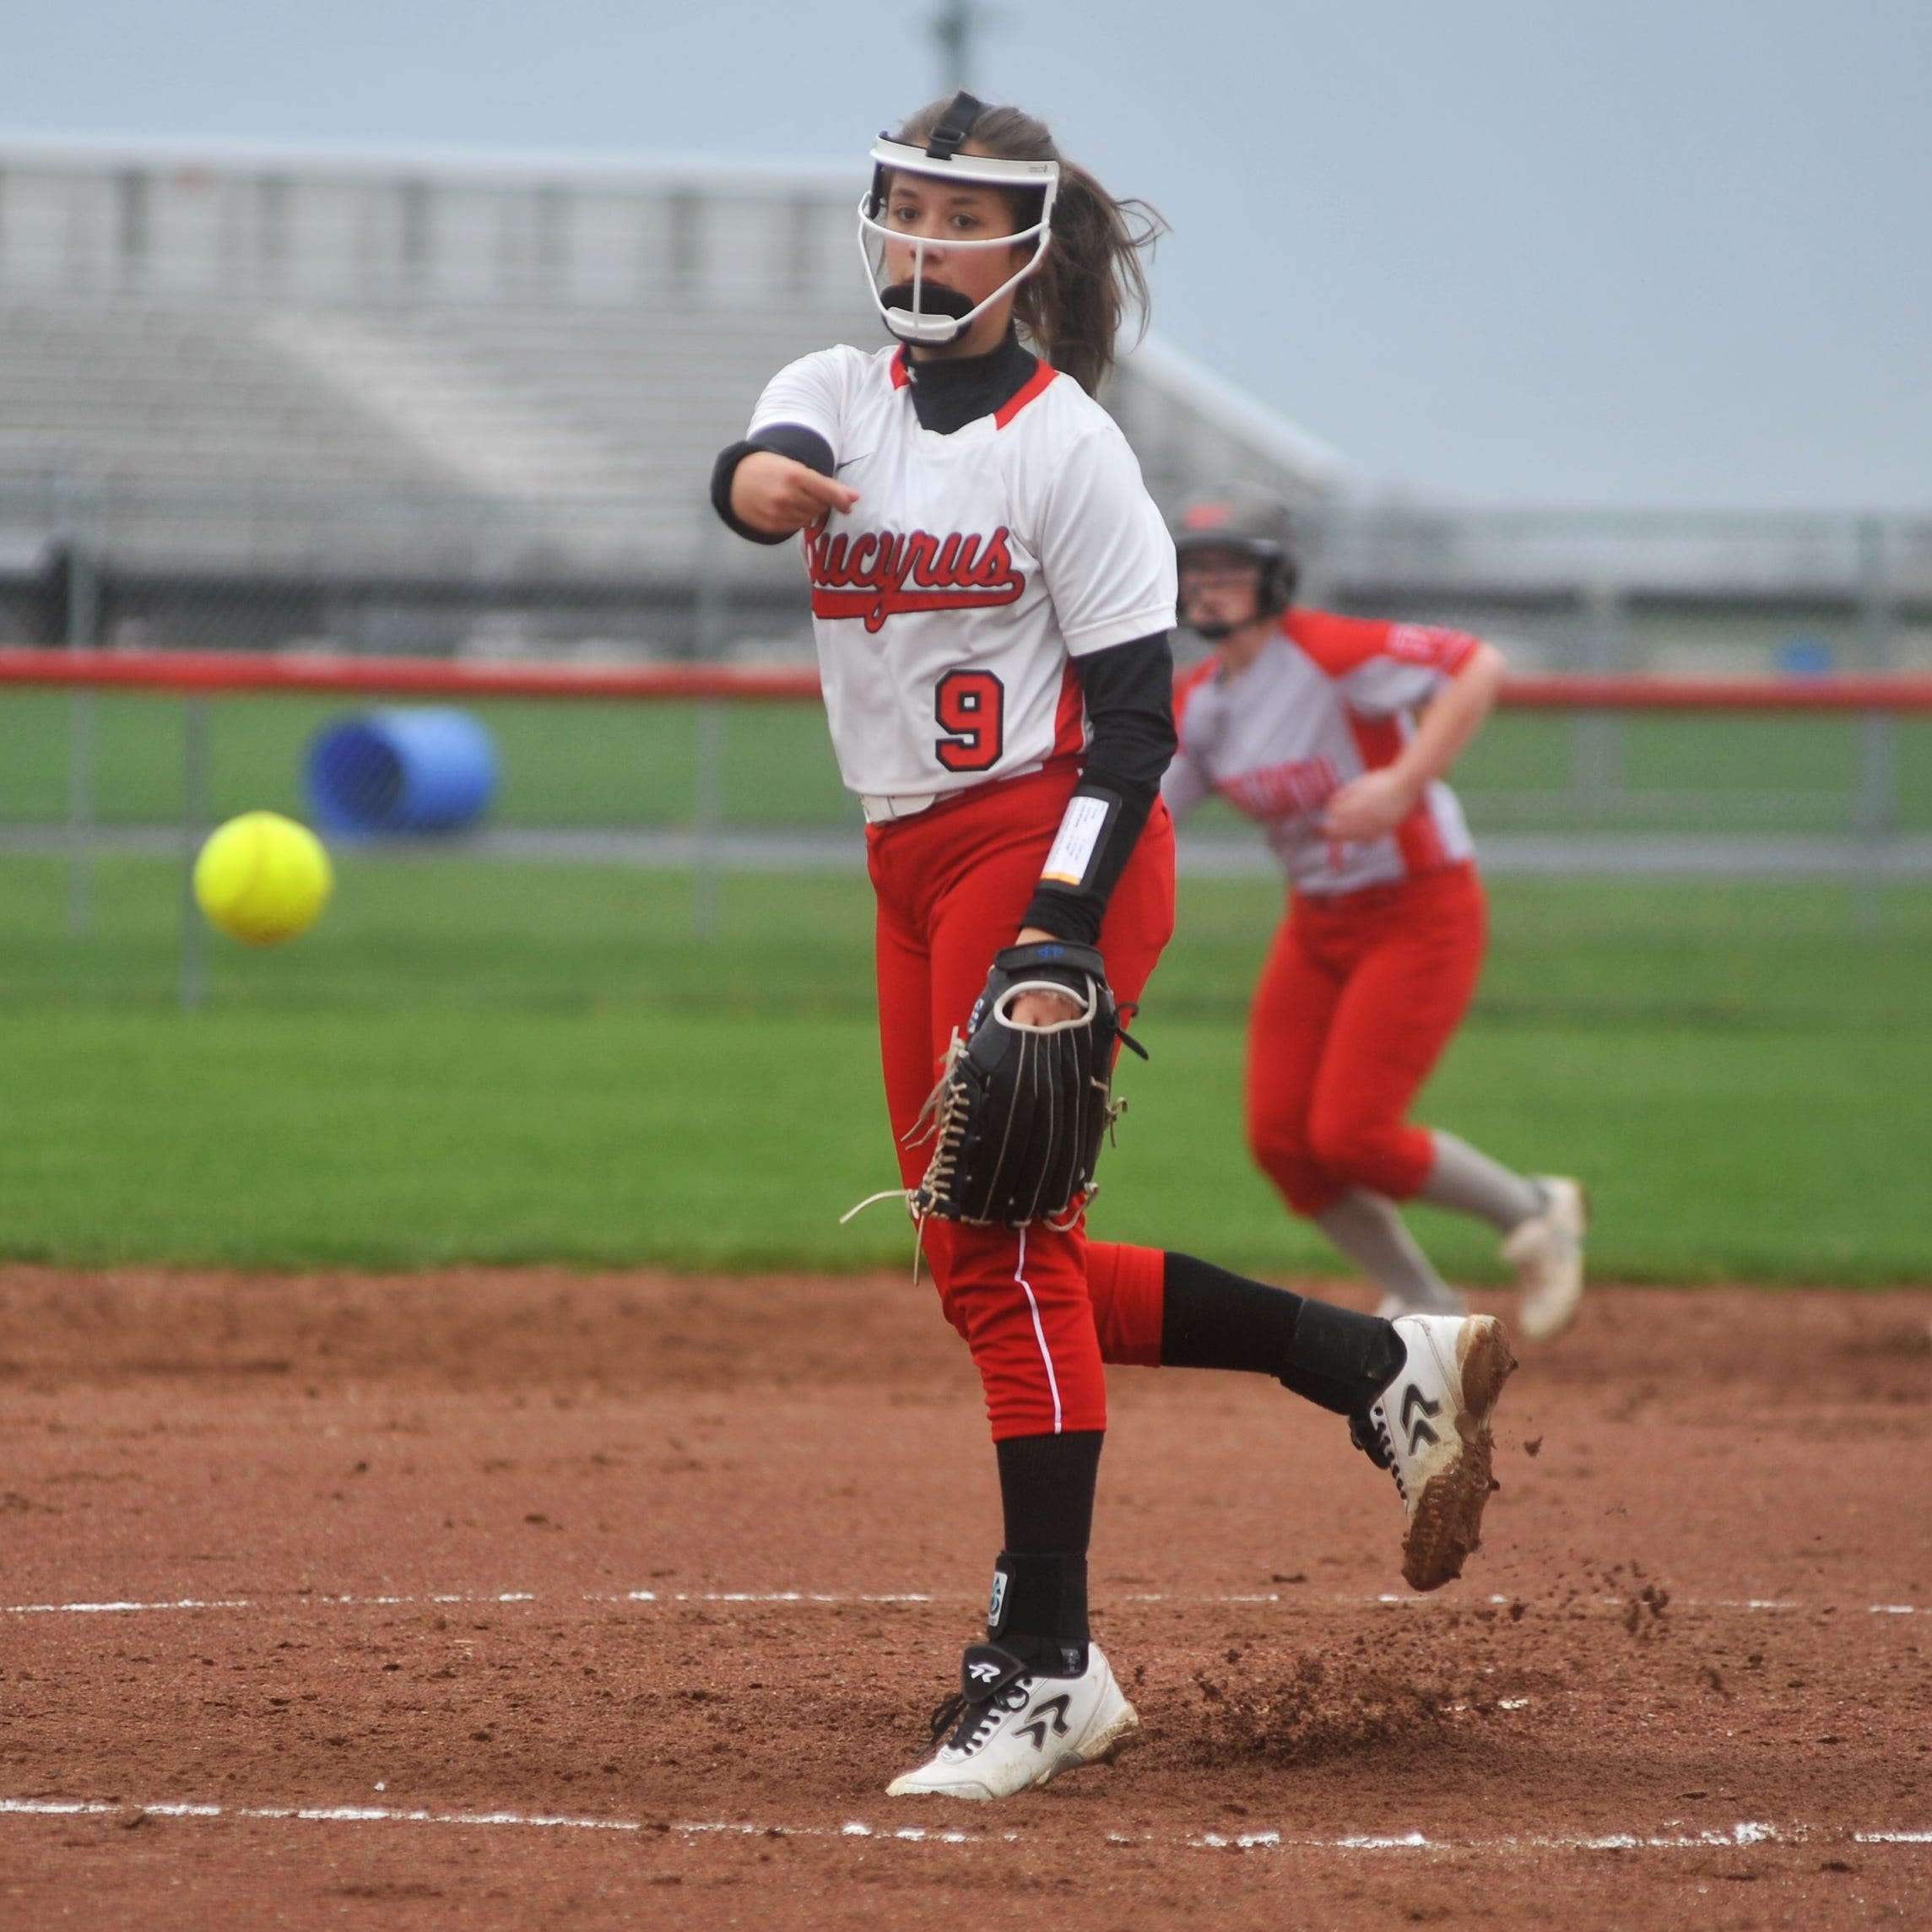 Bucyrus returns to top spot in softball power rankings